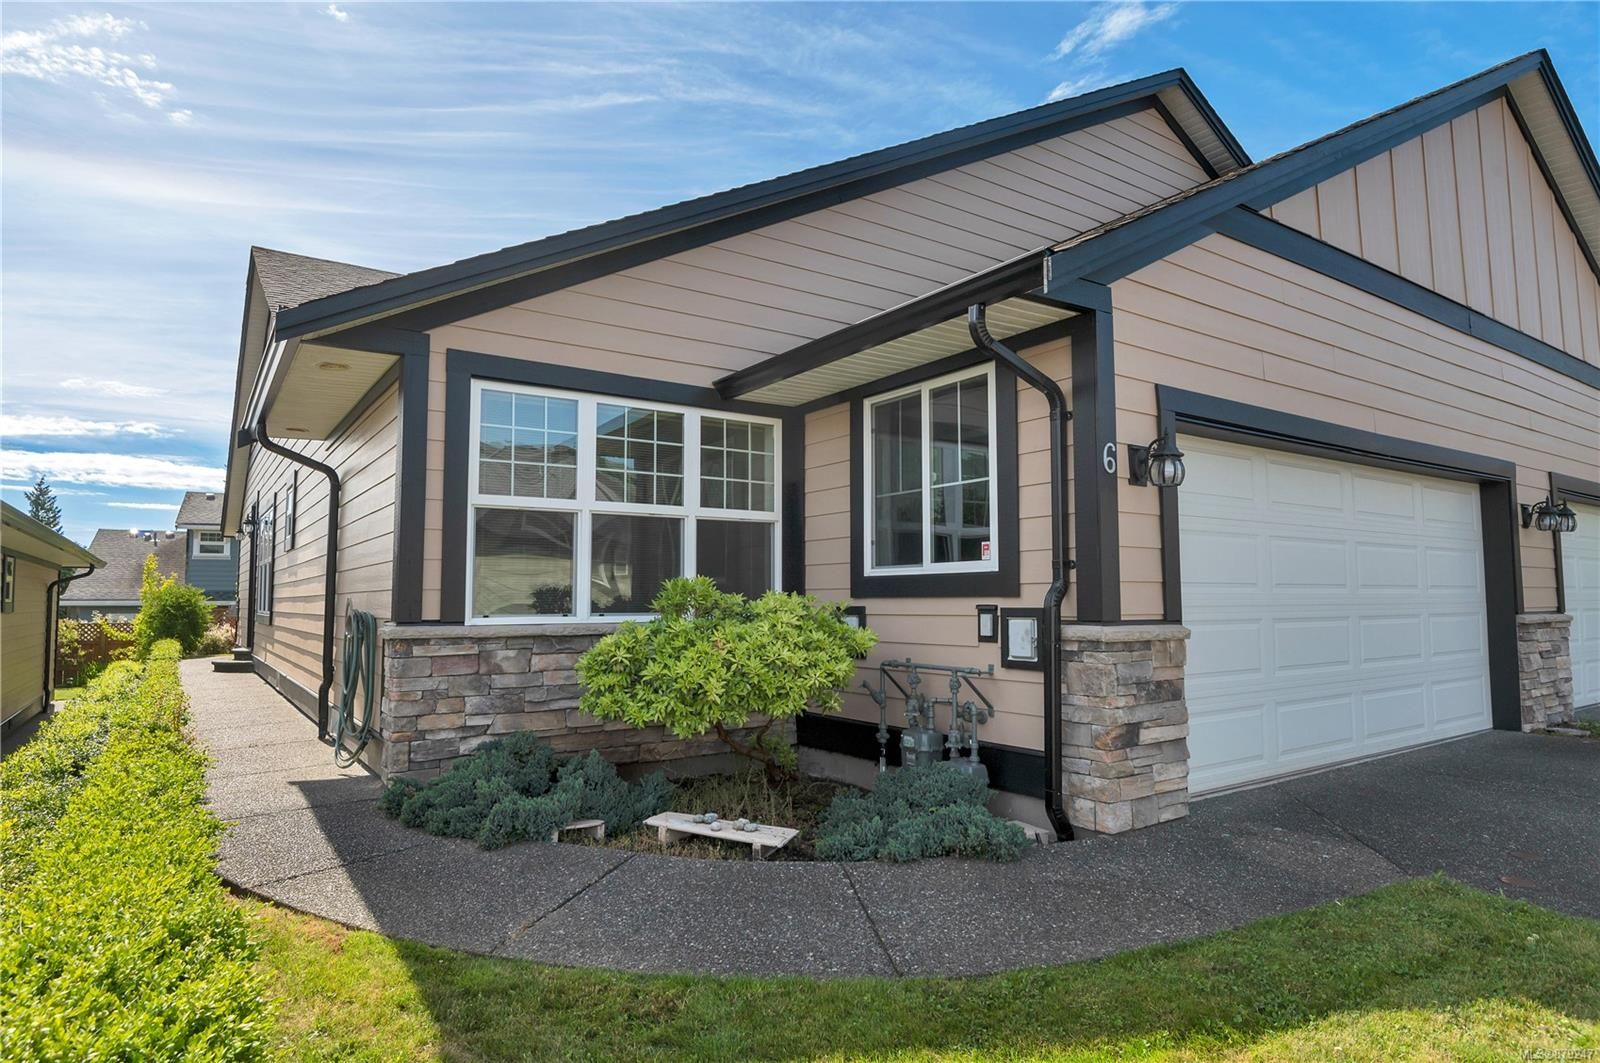 Main Photo: 6 611 Hilchey Rd in : CR Willow Point Row/Townhouse for sale (Campbell River)  : MLS®# 879247